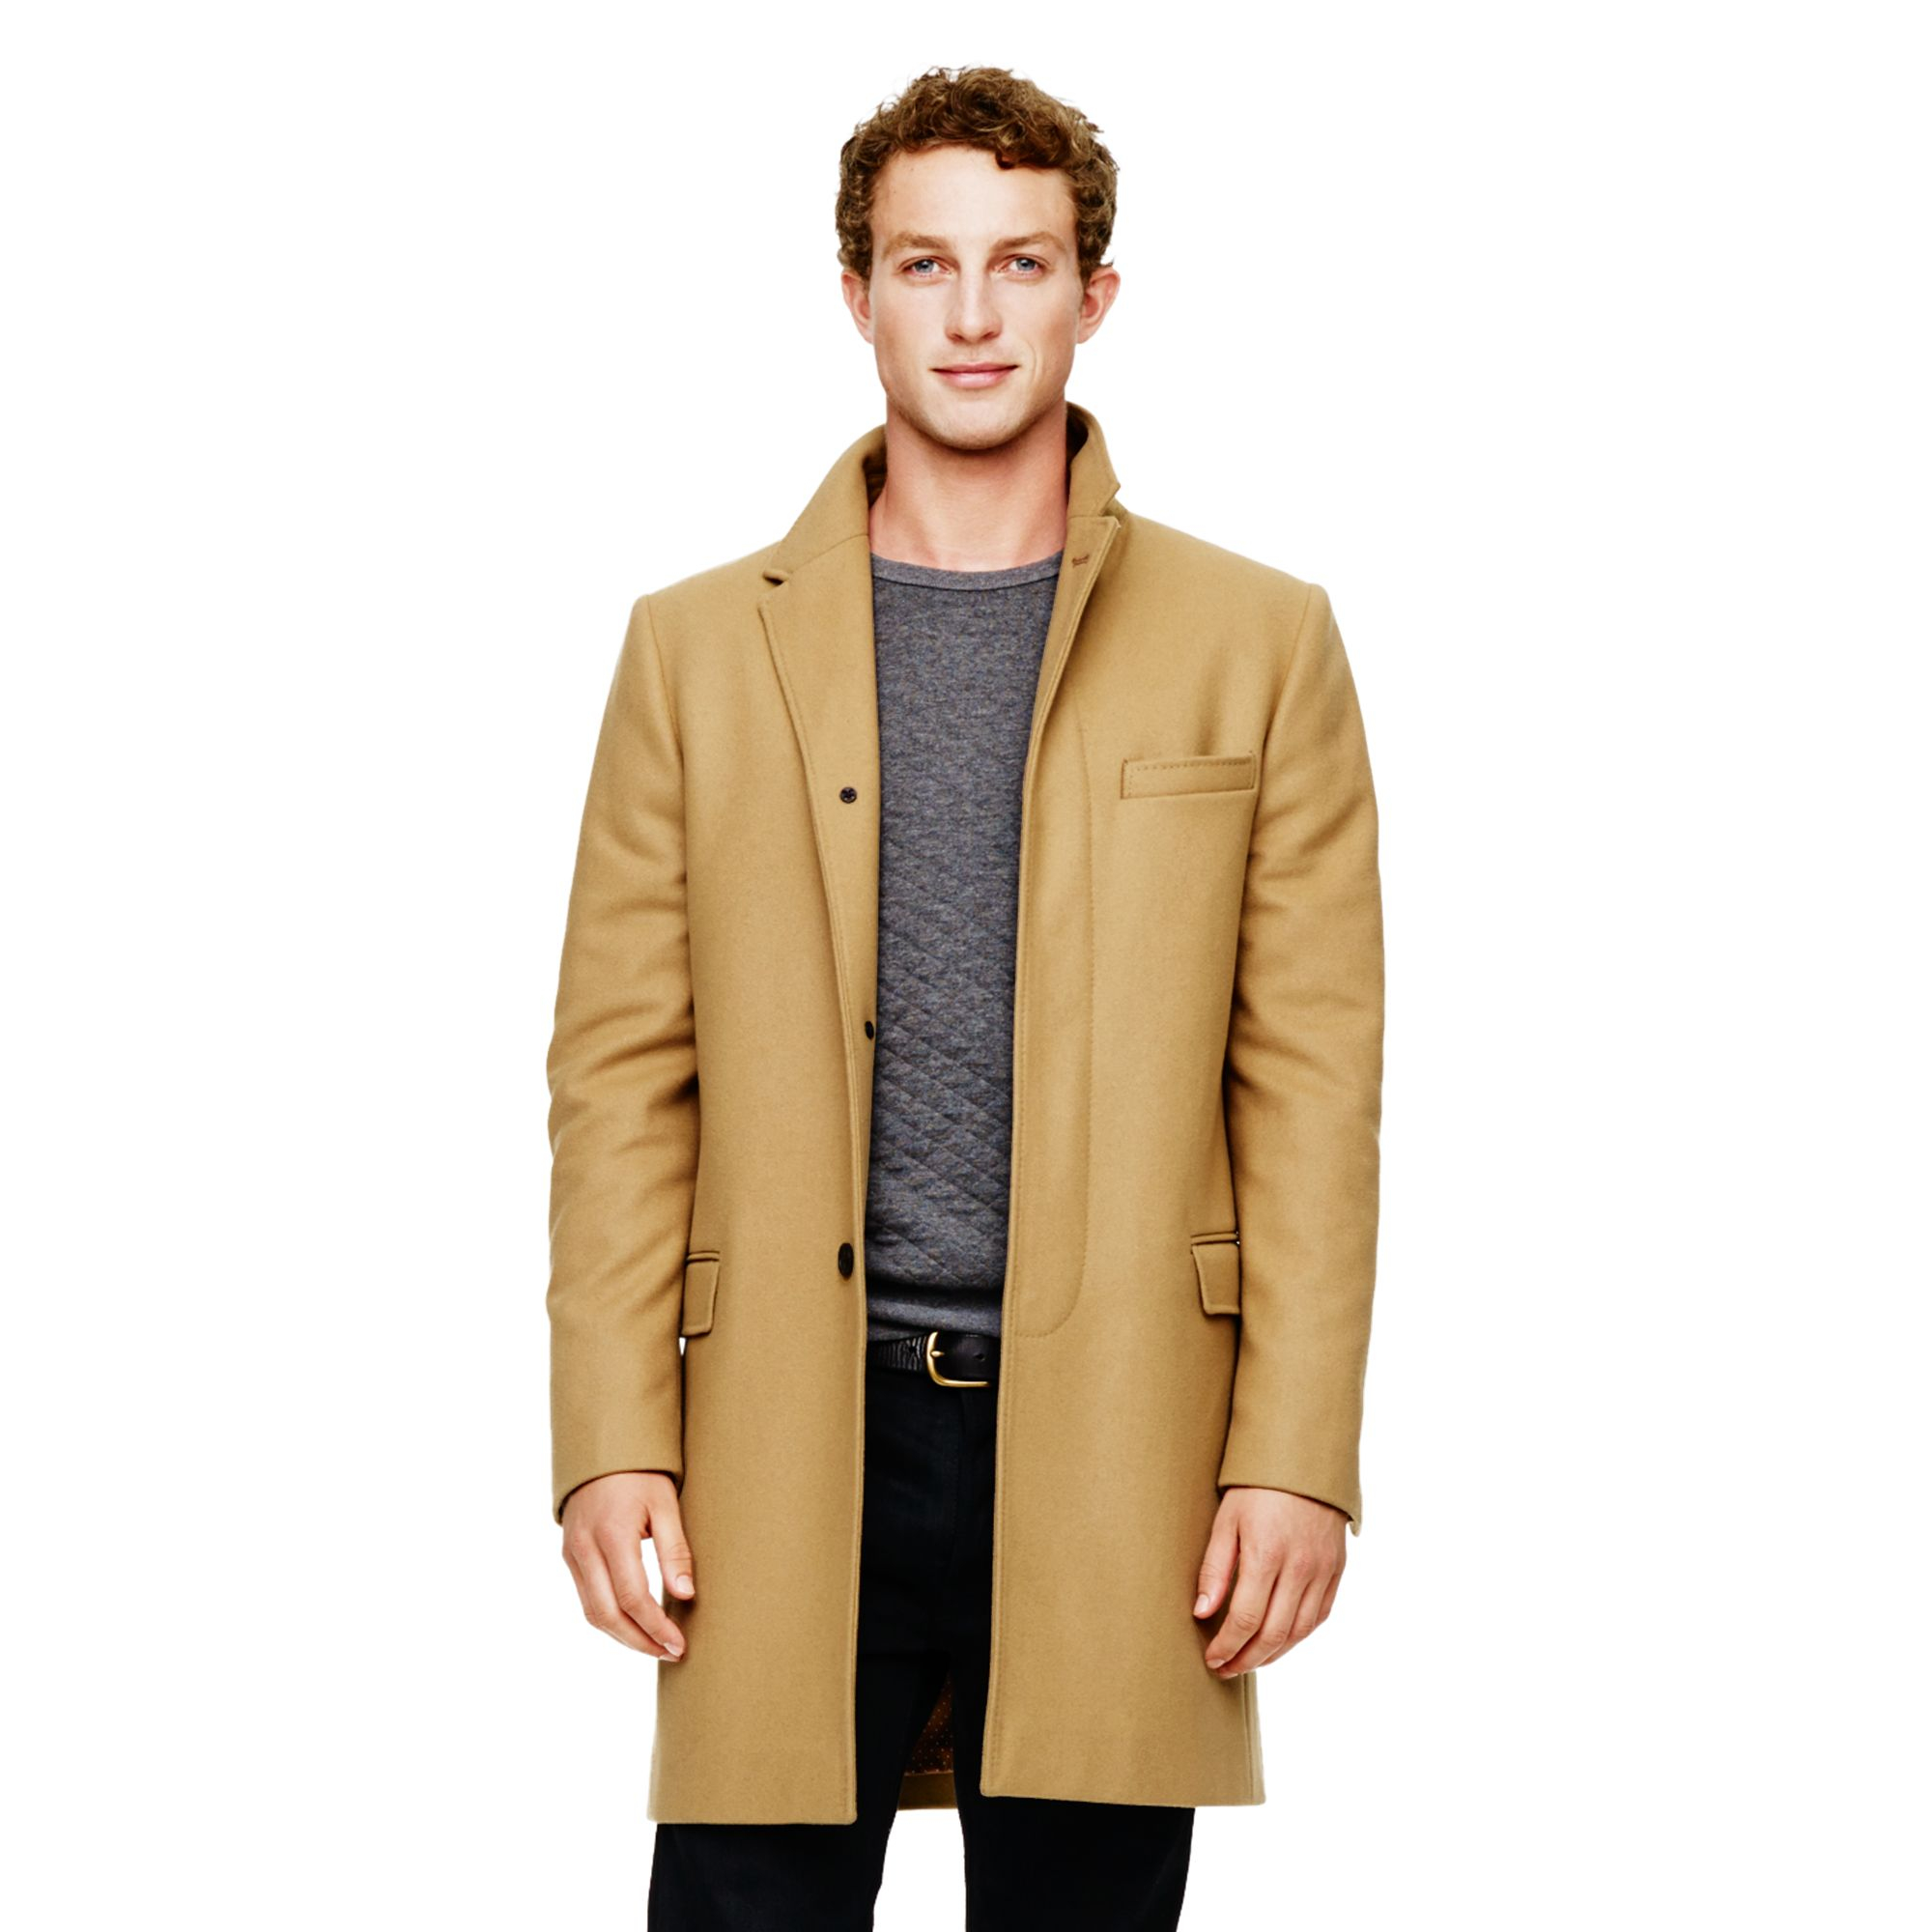 Club monaco Wool Top Coat in Natural for Men | Lyst